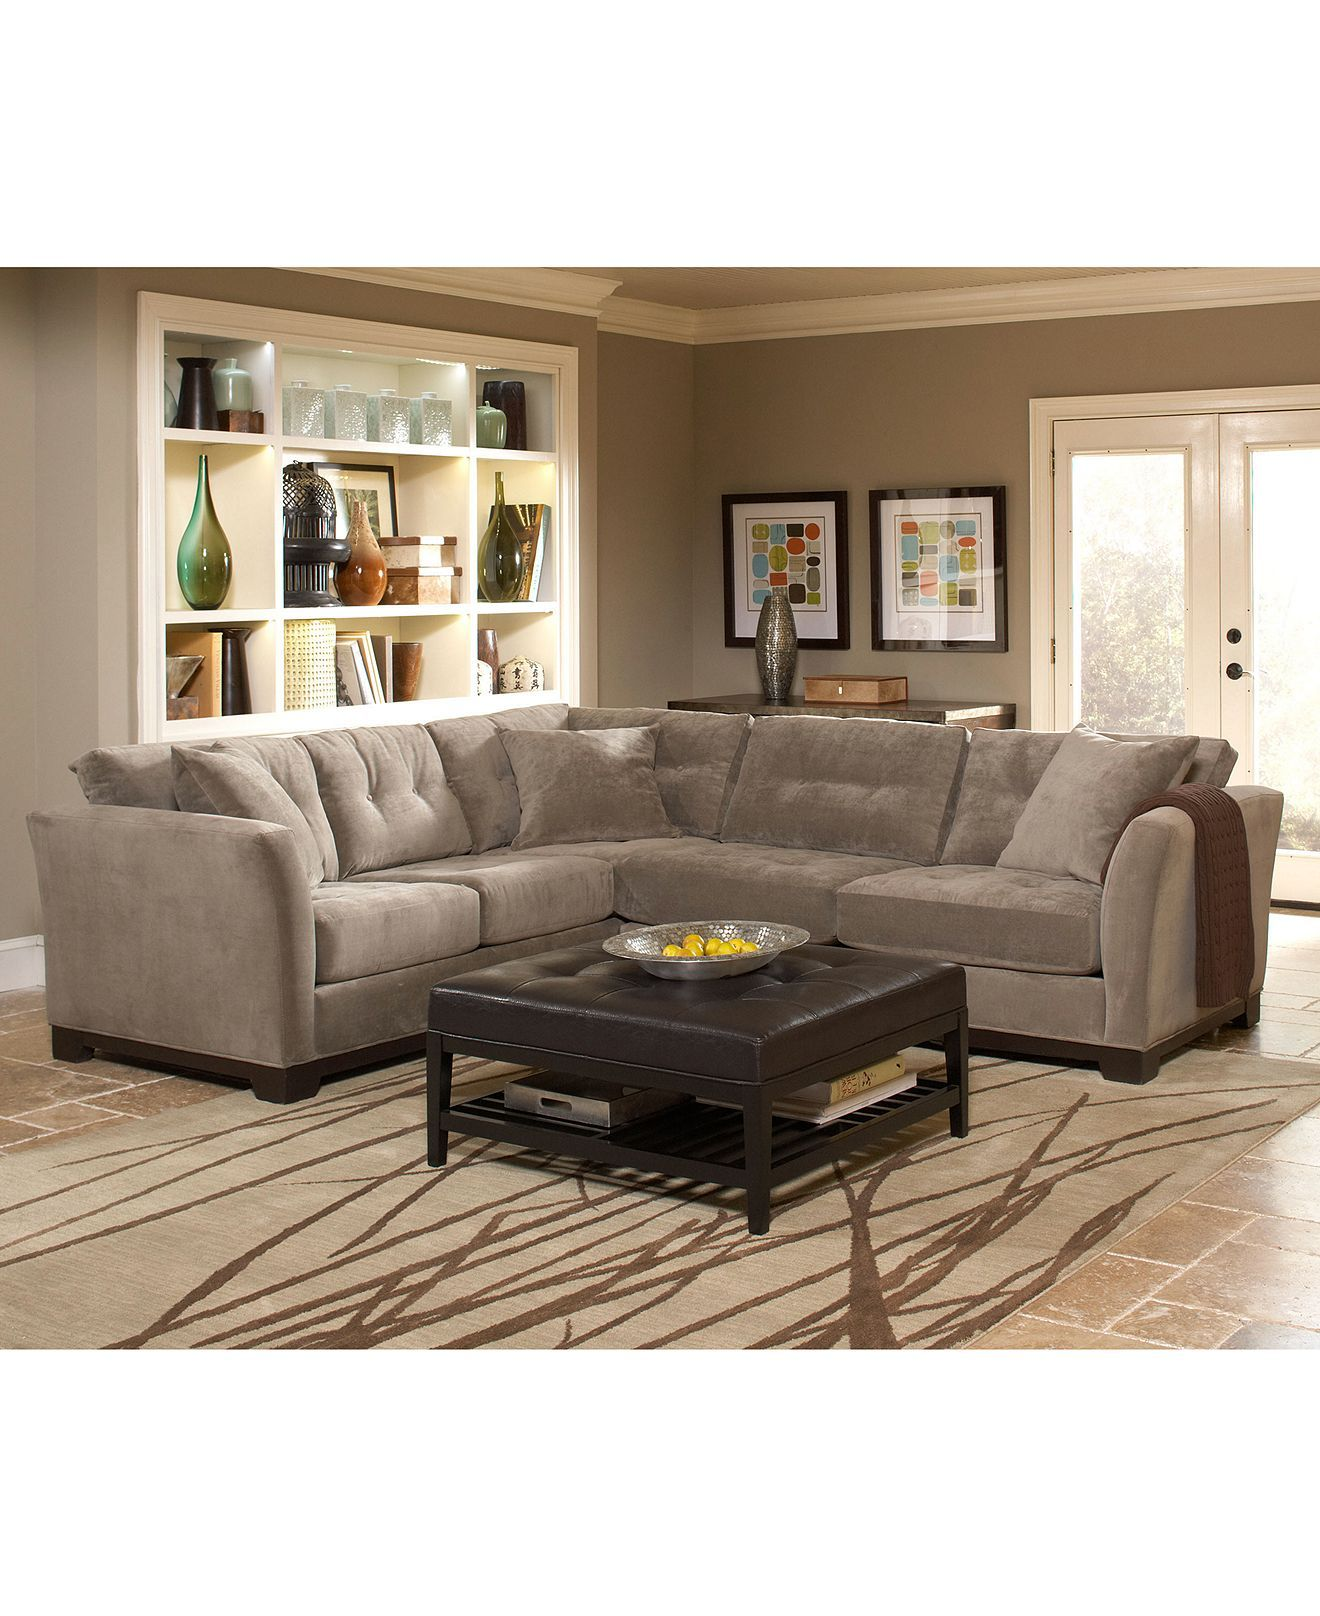 Elliot Fabric Sectional Sofa Collection Furniture Macy S A. Elegant Living Room Furniture. Classic Modern Living Room Has Elegant and Luxurious Models With. Luxurious Traditional Style Formal Living Room Furniture Set Hd